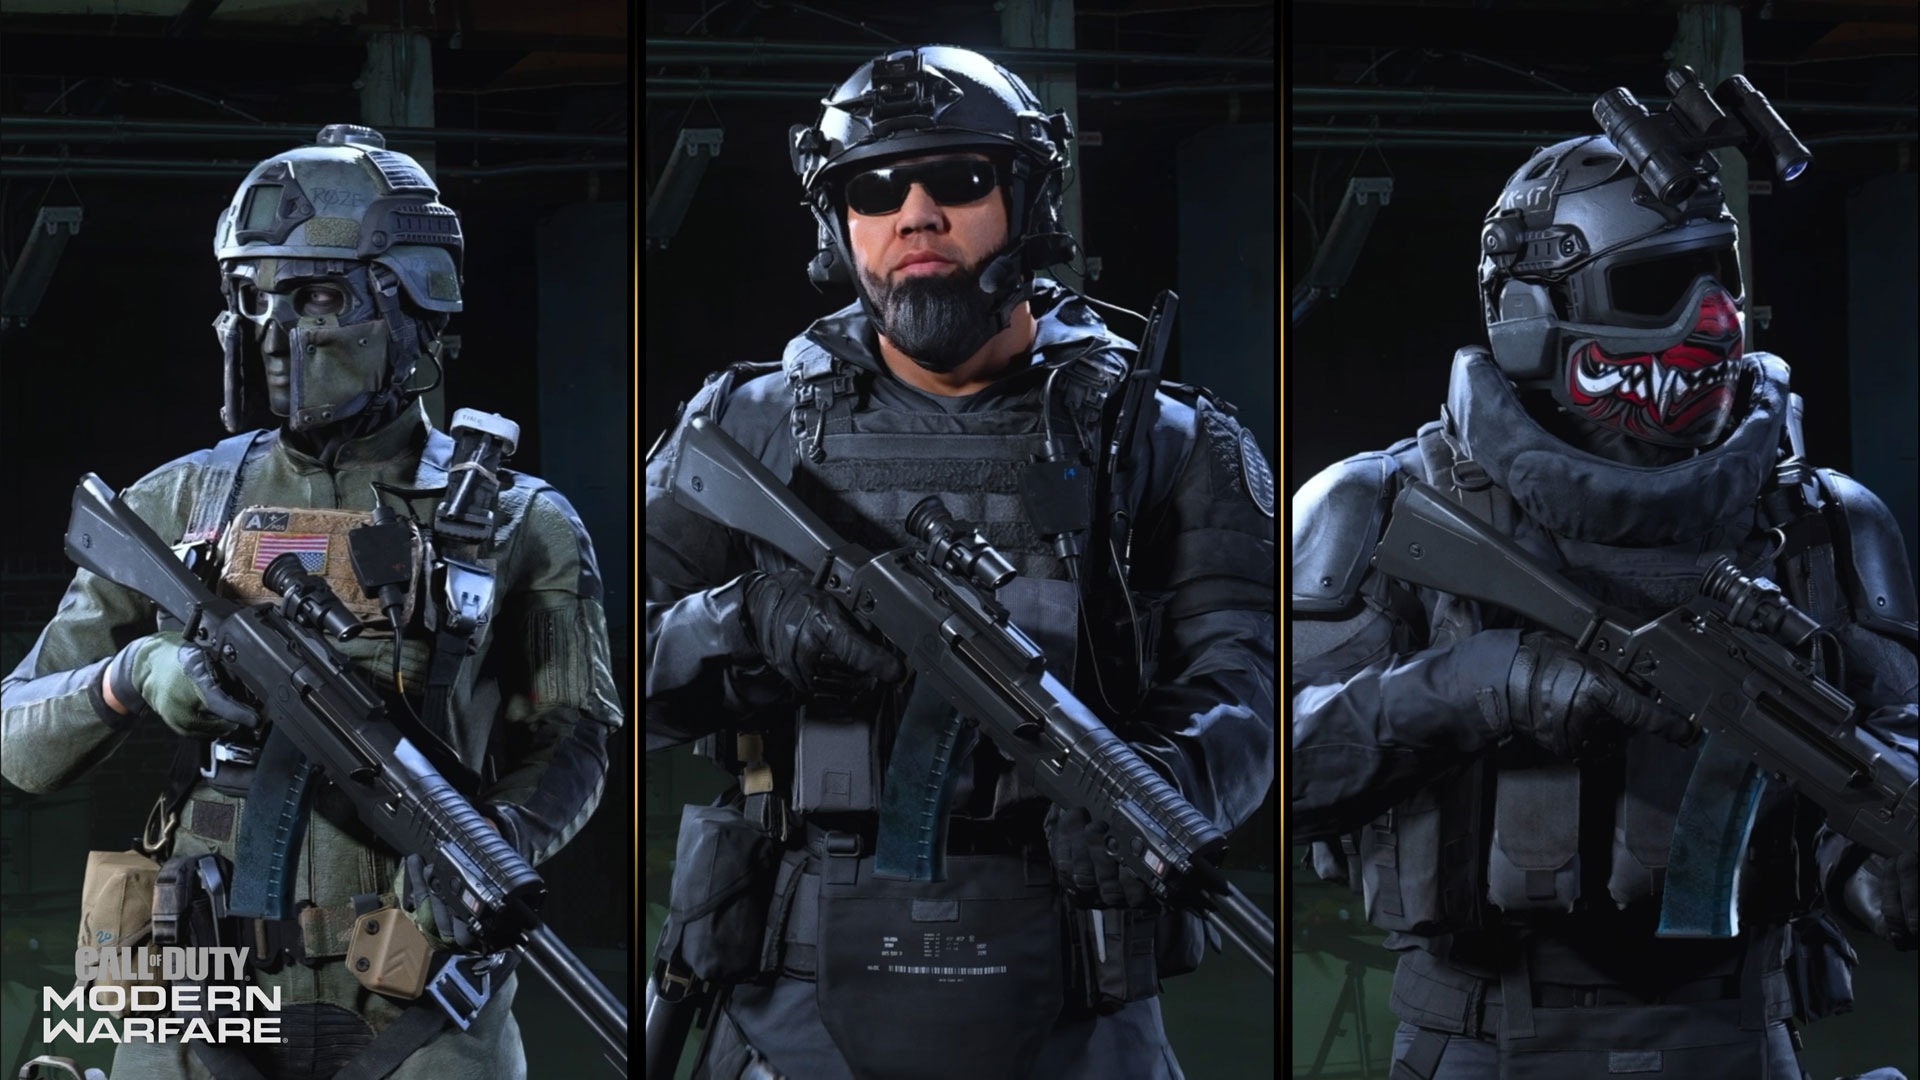 Image of article 'Warzone Season 5 introduces the Shadow Company to Modern Warfare'